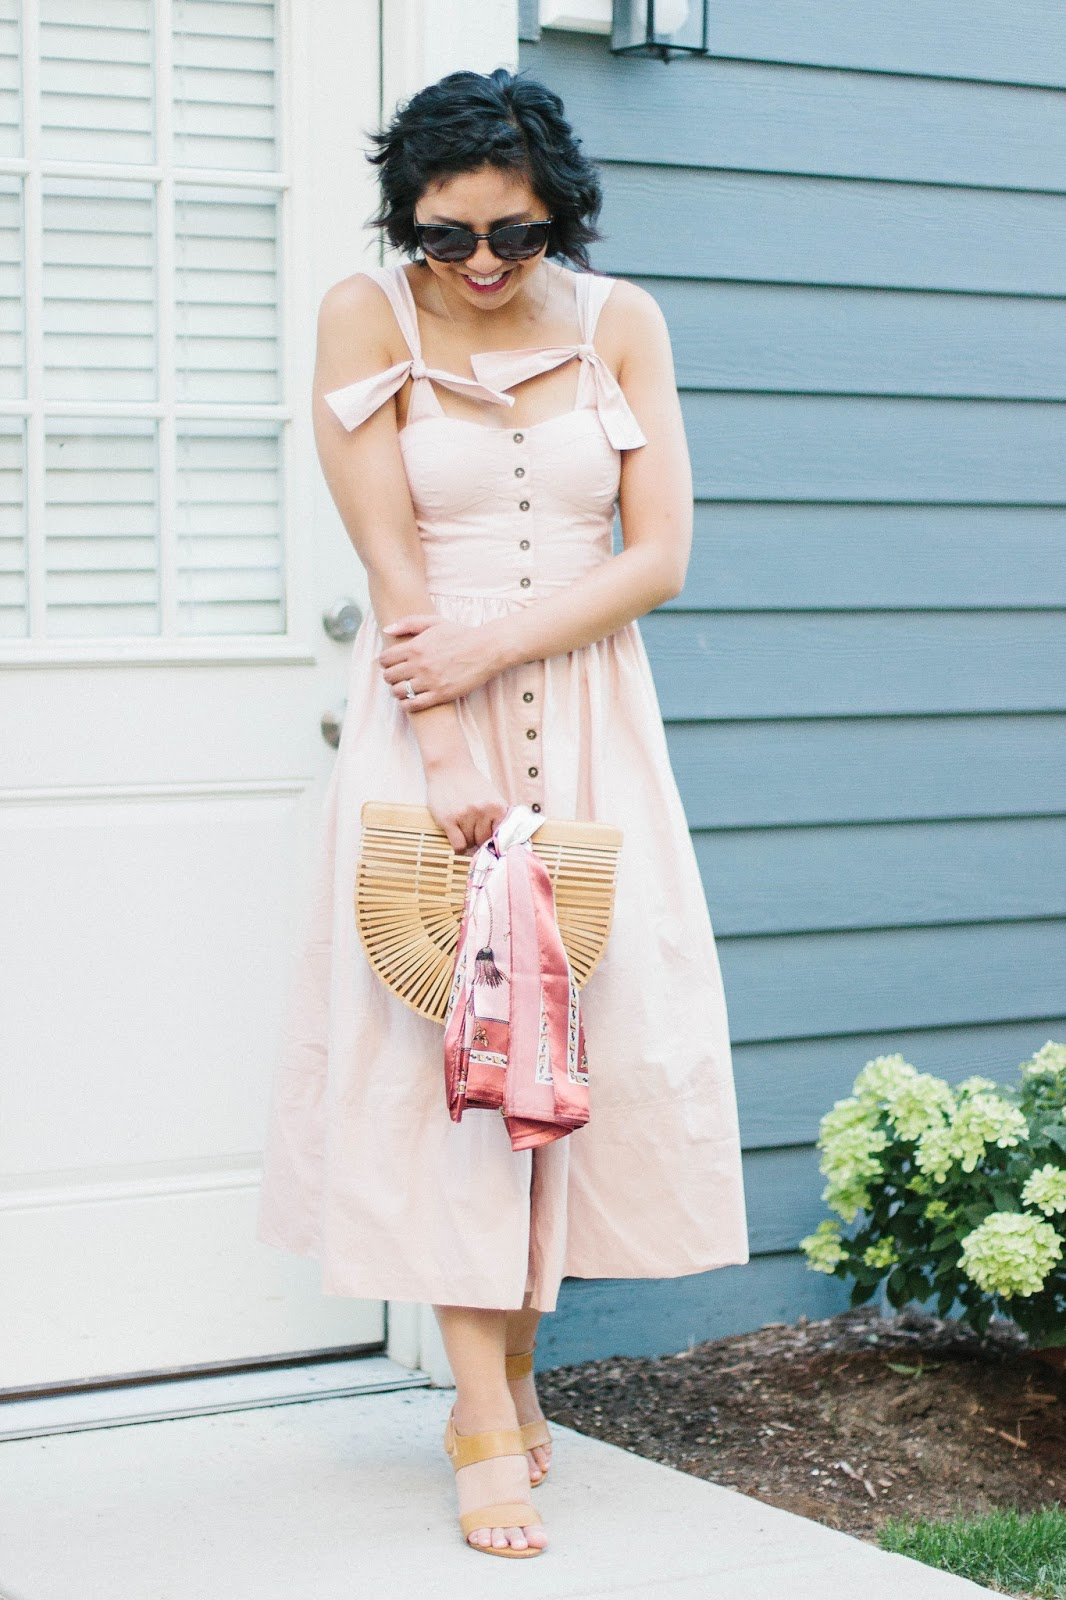 The Most Darling Dress to Wear